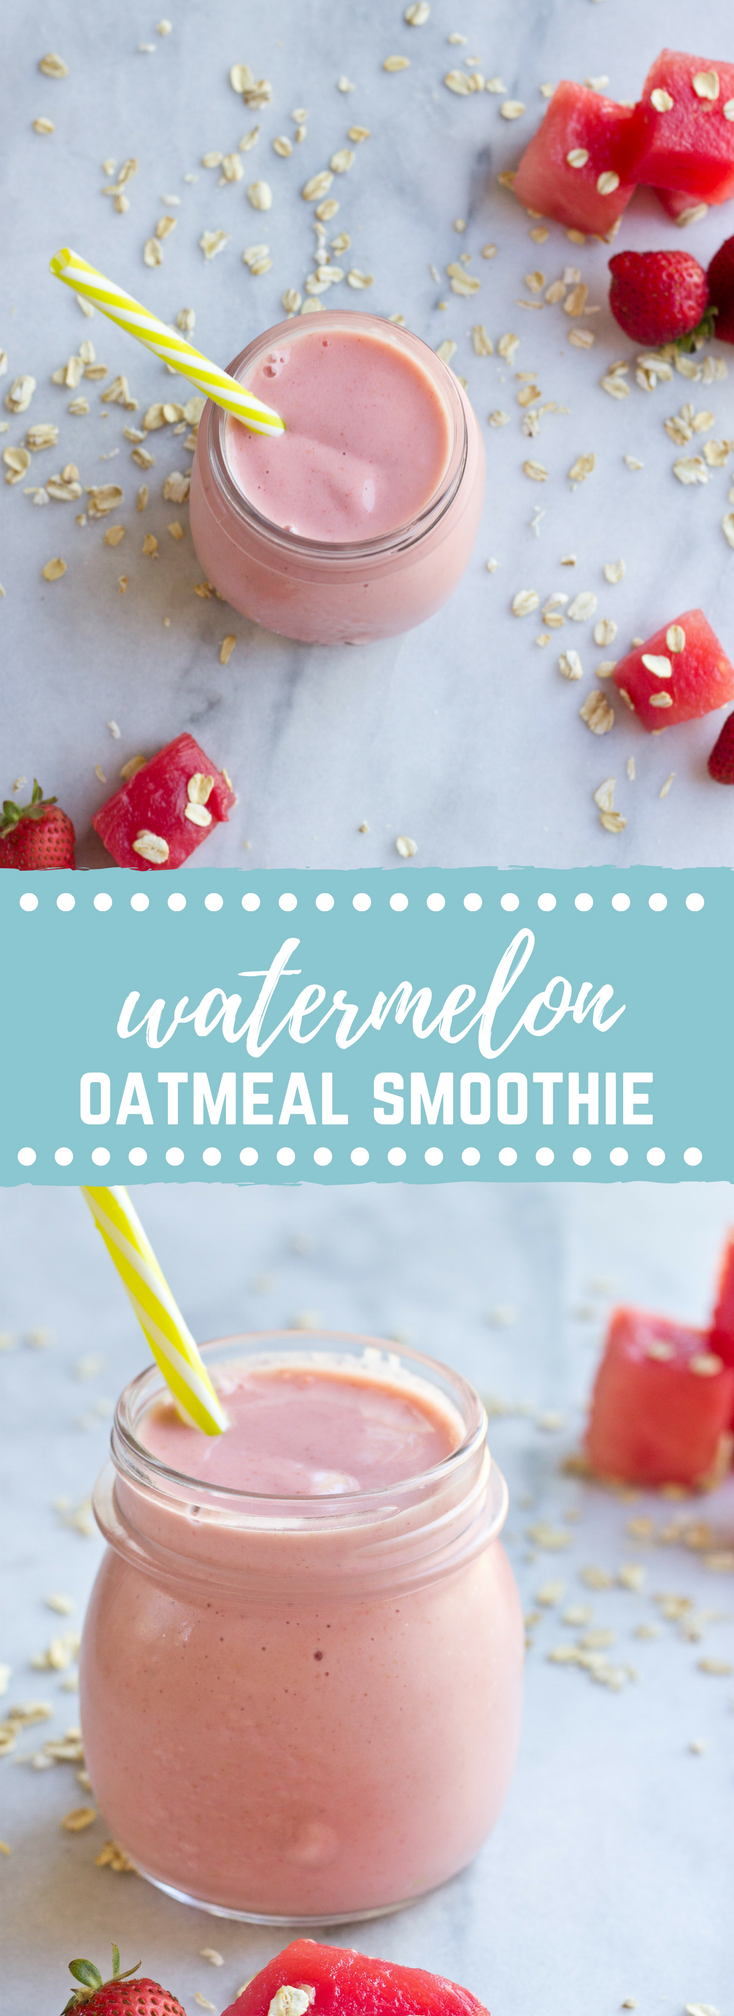 This Watermelon Oatmeal Smoothie is hydrating and filled with electrolytes, complex carbs and proteins needed to refuel post workout.